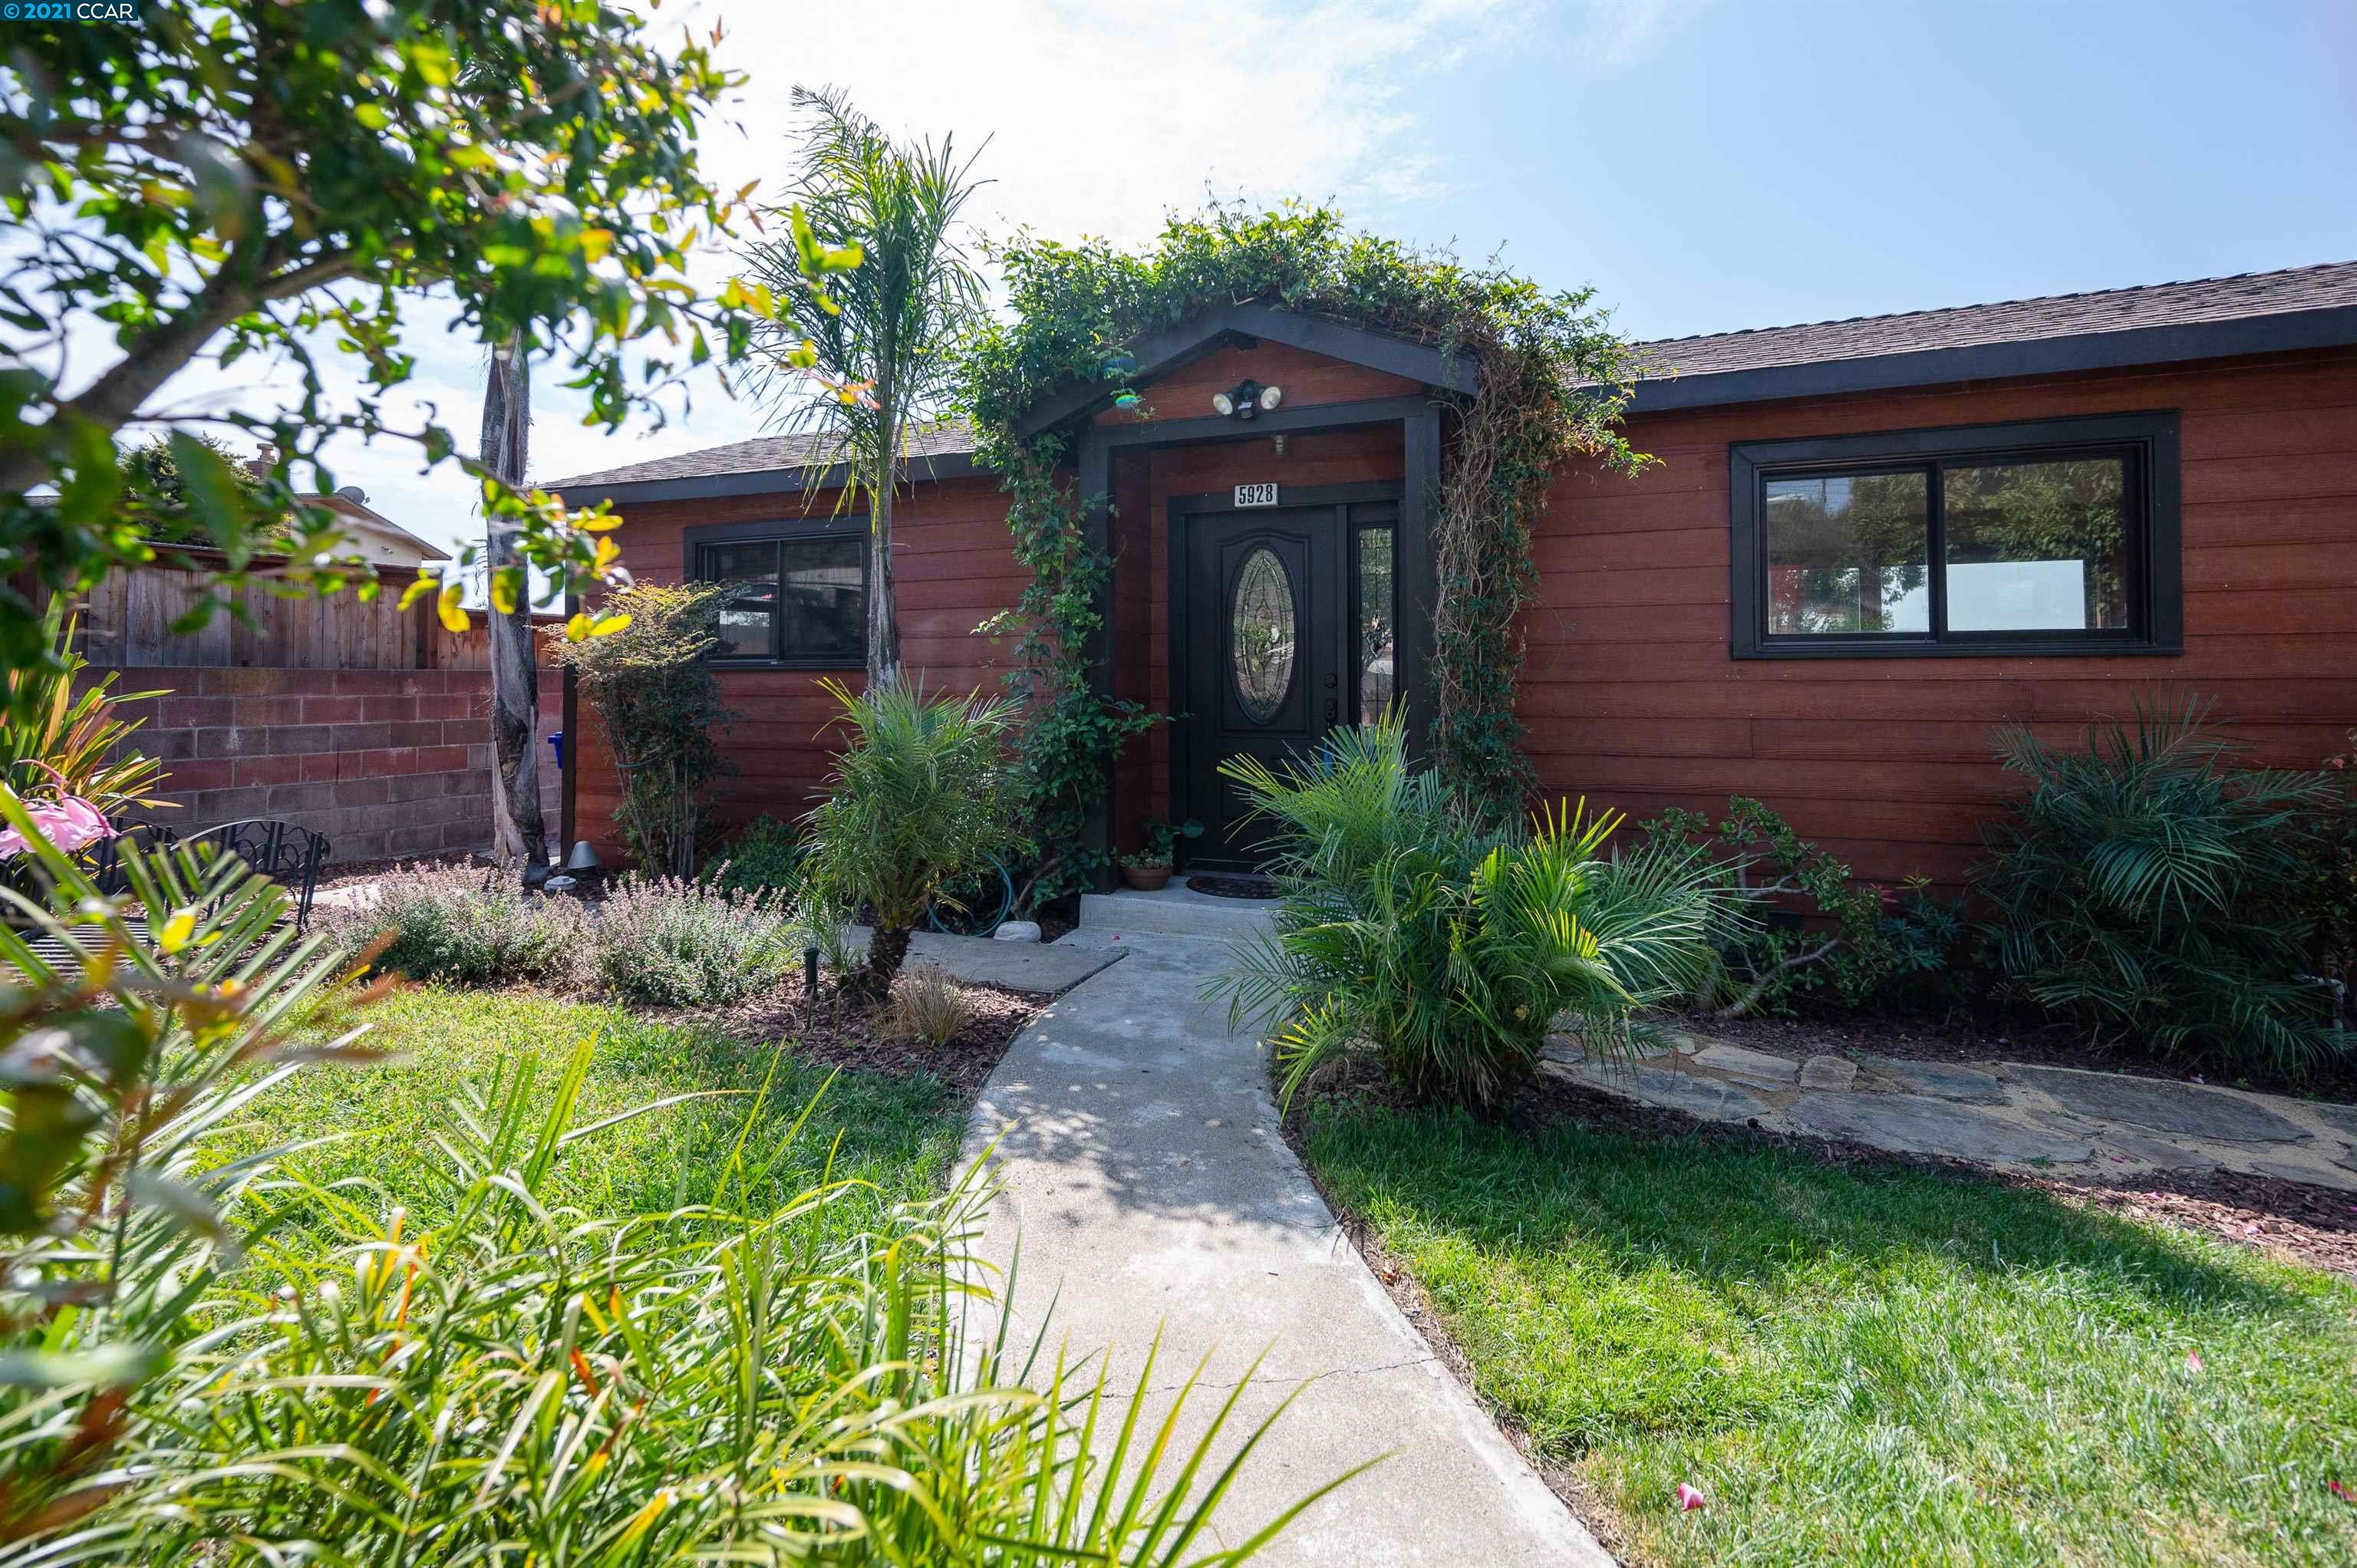 Versatile and unique home recently rebuilt in 2009.  Level-in entry at street level.  3 bedrooms on the street level with one master suite with full bath and another bedroom with half-bath. Downstairs is another bedroom plus an In-Law studio with kitchenette and full bath!  Great opportunity for a large or multi-generational group.  In-law unit could be an income opportunity.  TWO separate outbuildings in the rear can be used as an office, art or music studio or many other uses.  Fantastic Marin and filtered SF views from spacious deck. Over a dozen mature fruit trees around the house.  Quiet cul-de-sac.  Must see!!!